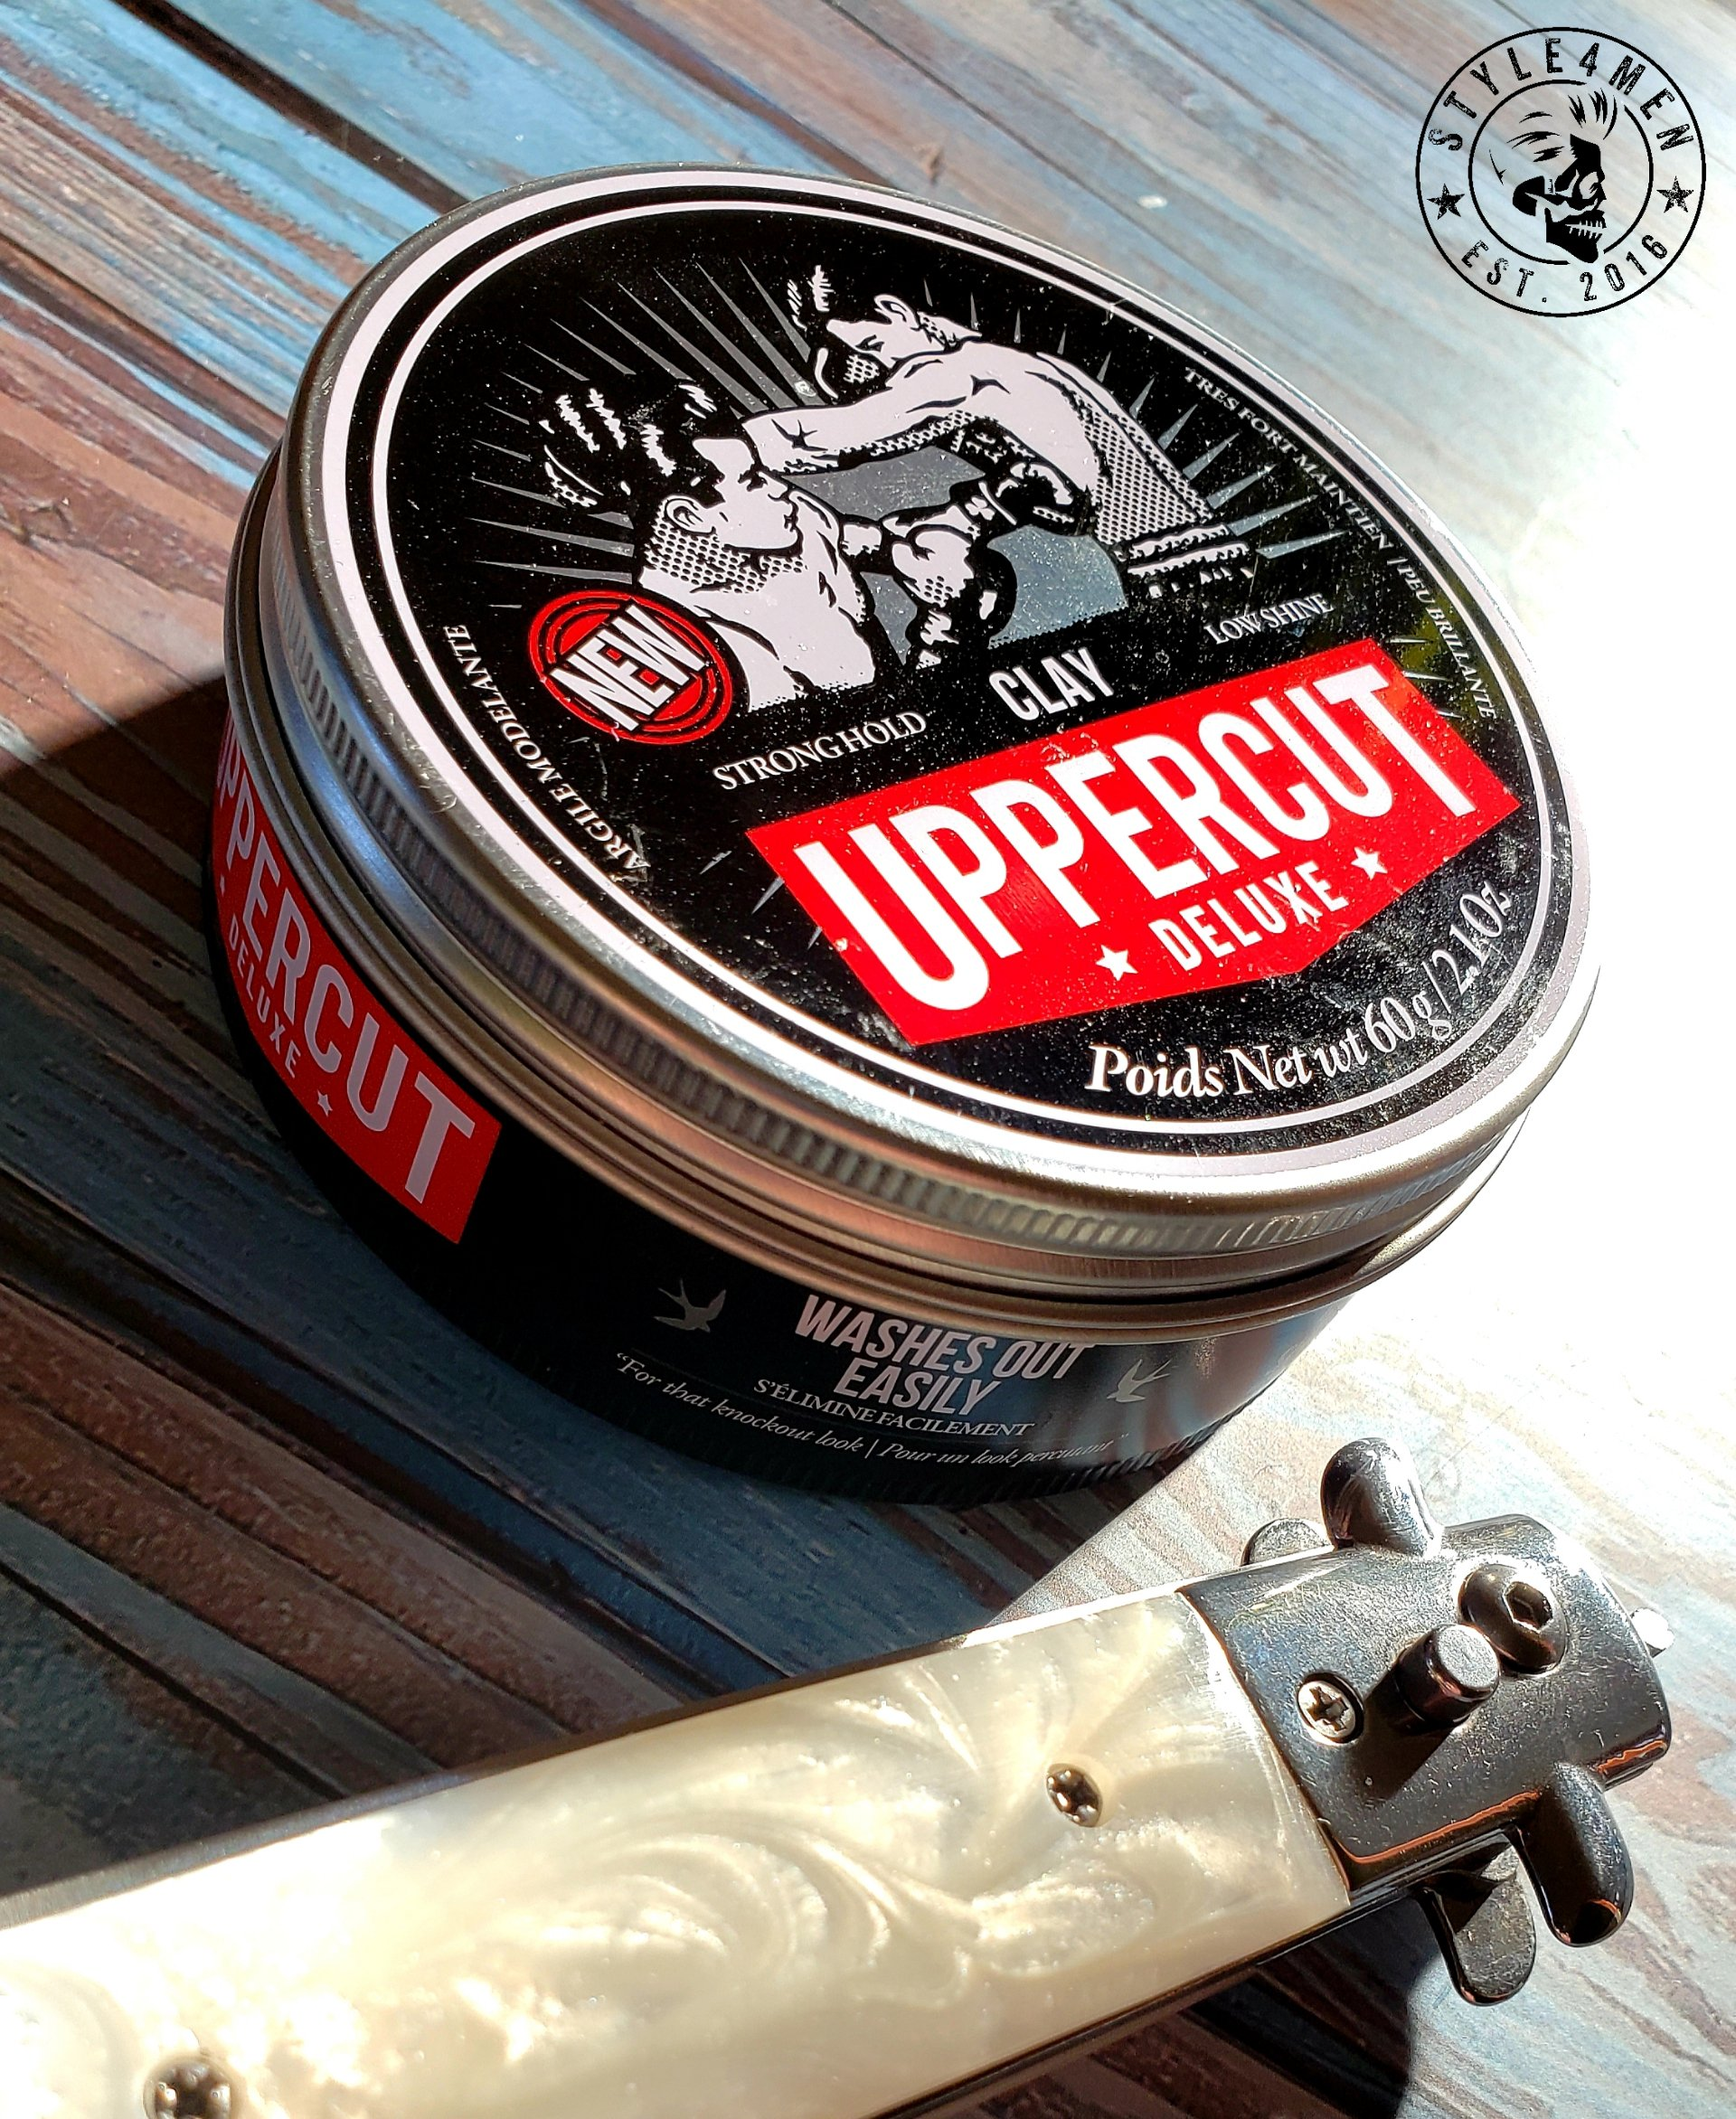 UPPERCUT DELUXE locks everything in place with its strong hold Clay